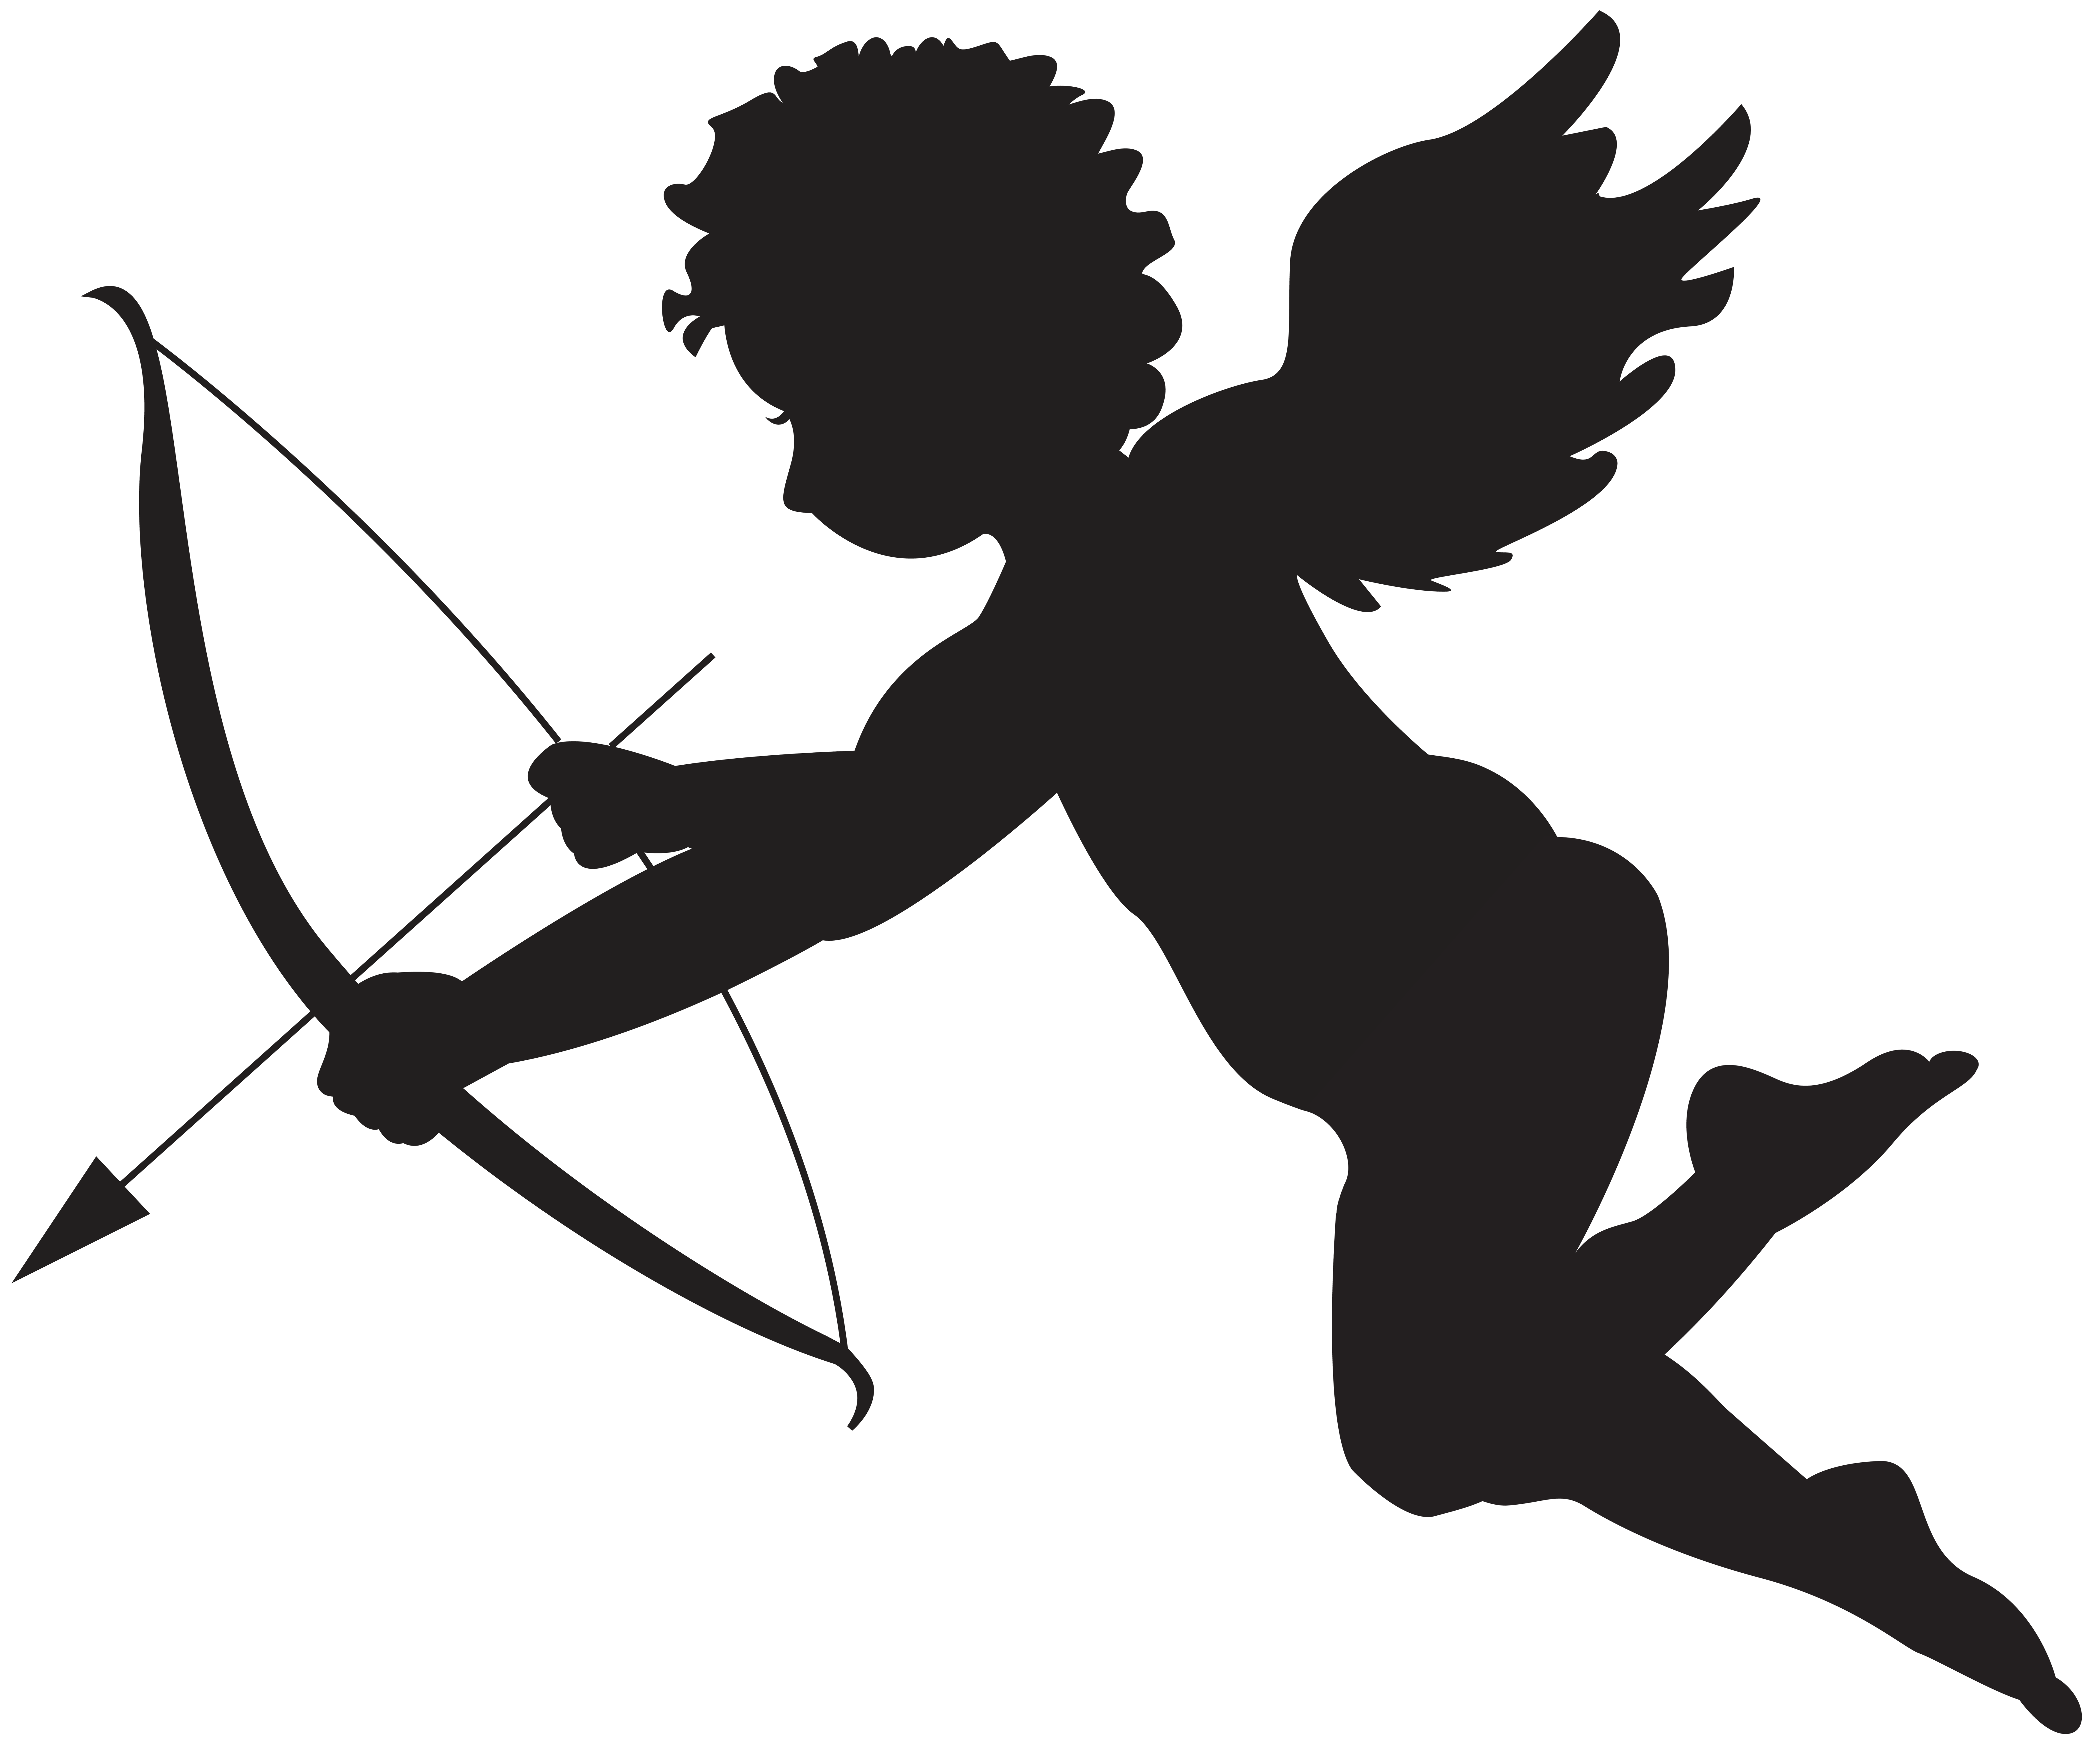 Transparent png cupid. Image gallery yopriceville high